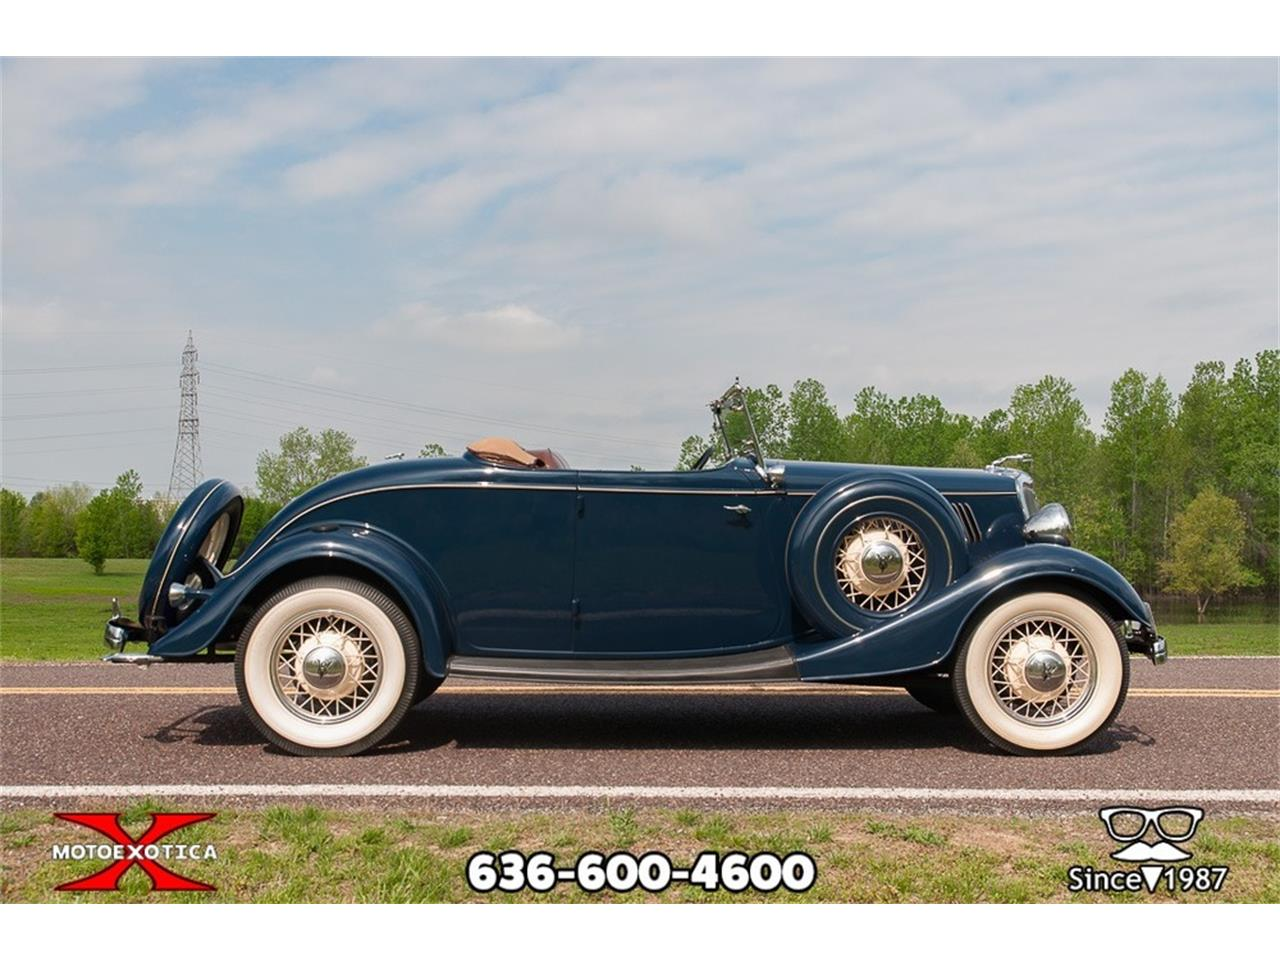 Large Picture of 1934 Ford Roadster located in Missouri - $59,900.00 - Q53N